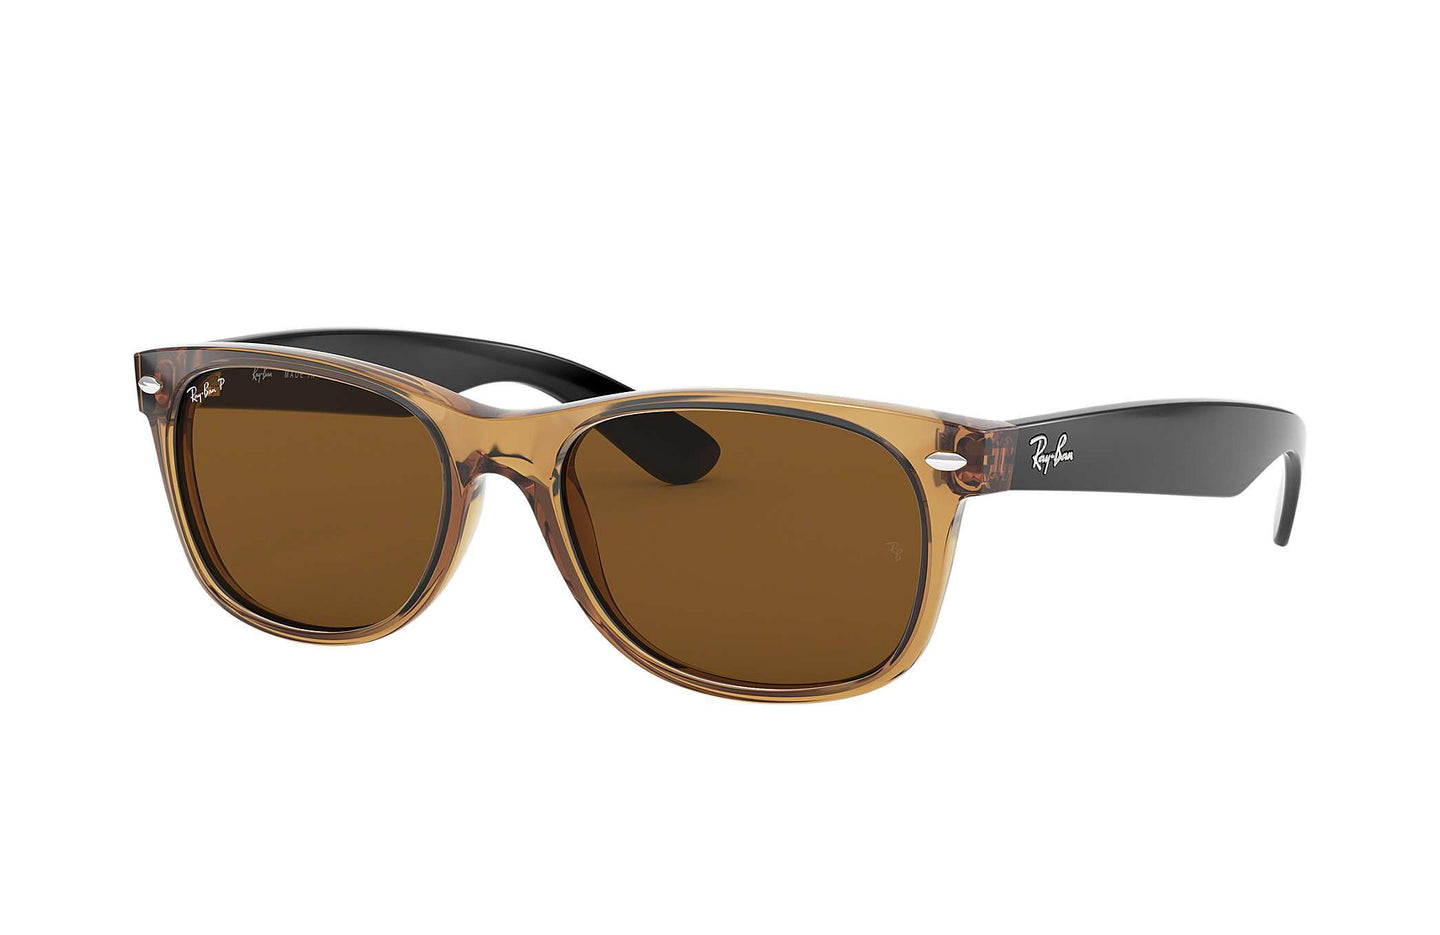 shades-of-charleston - Ray-Ban 2132 New Wayfarer Classic - Ray-Ban - Sunglasses